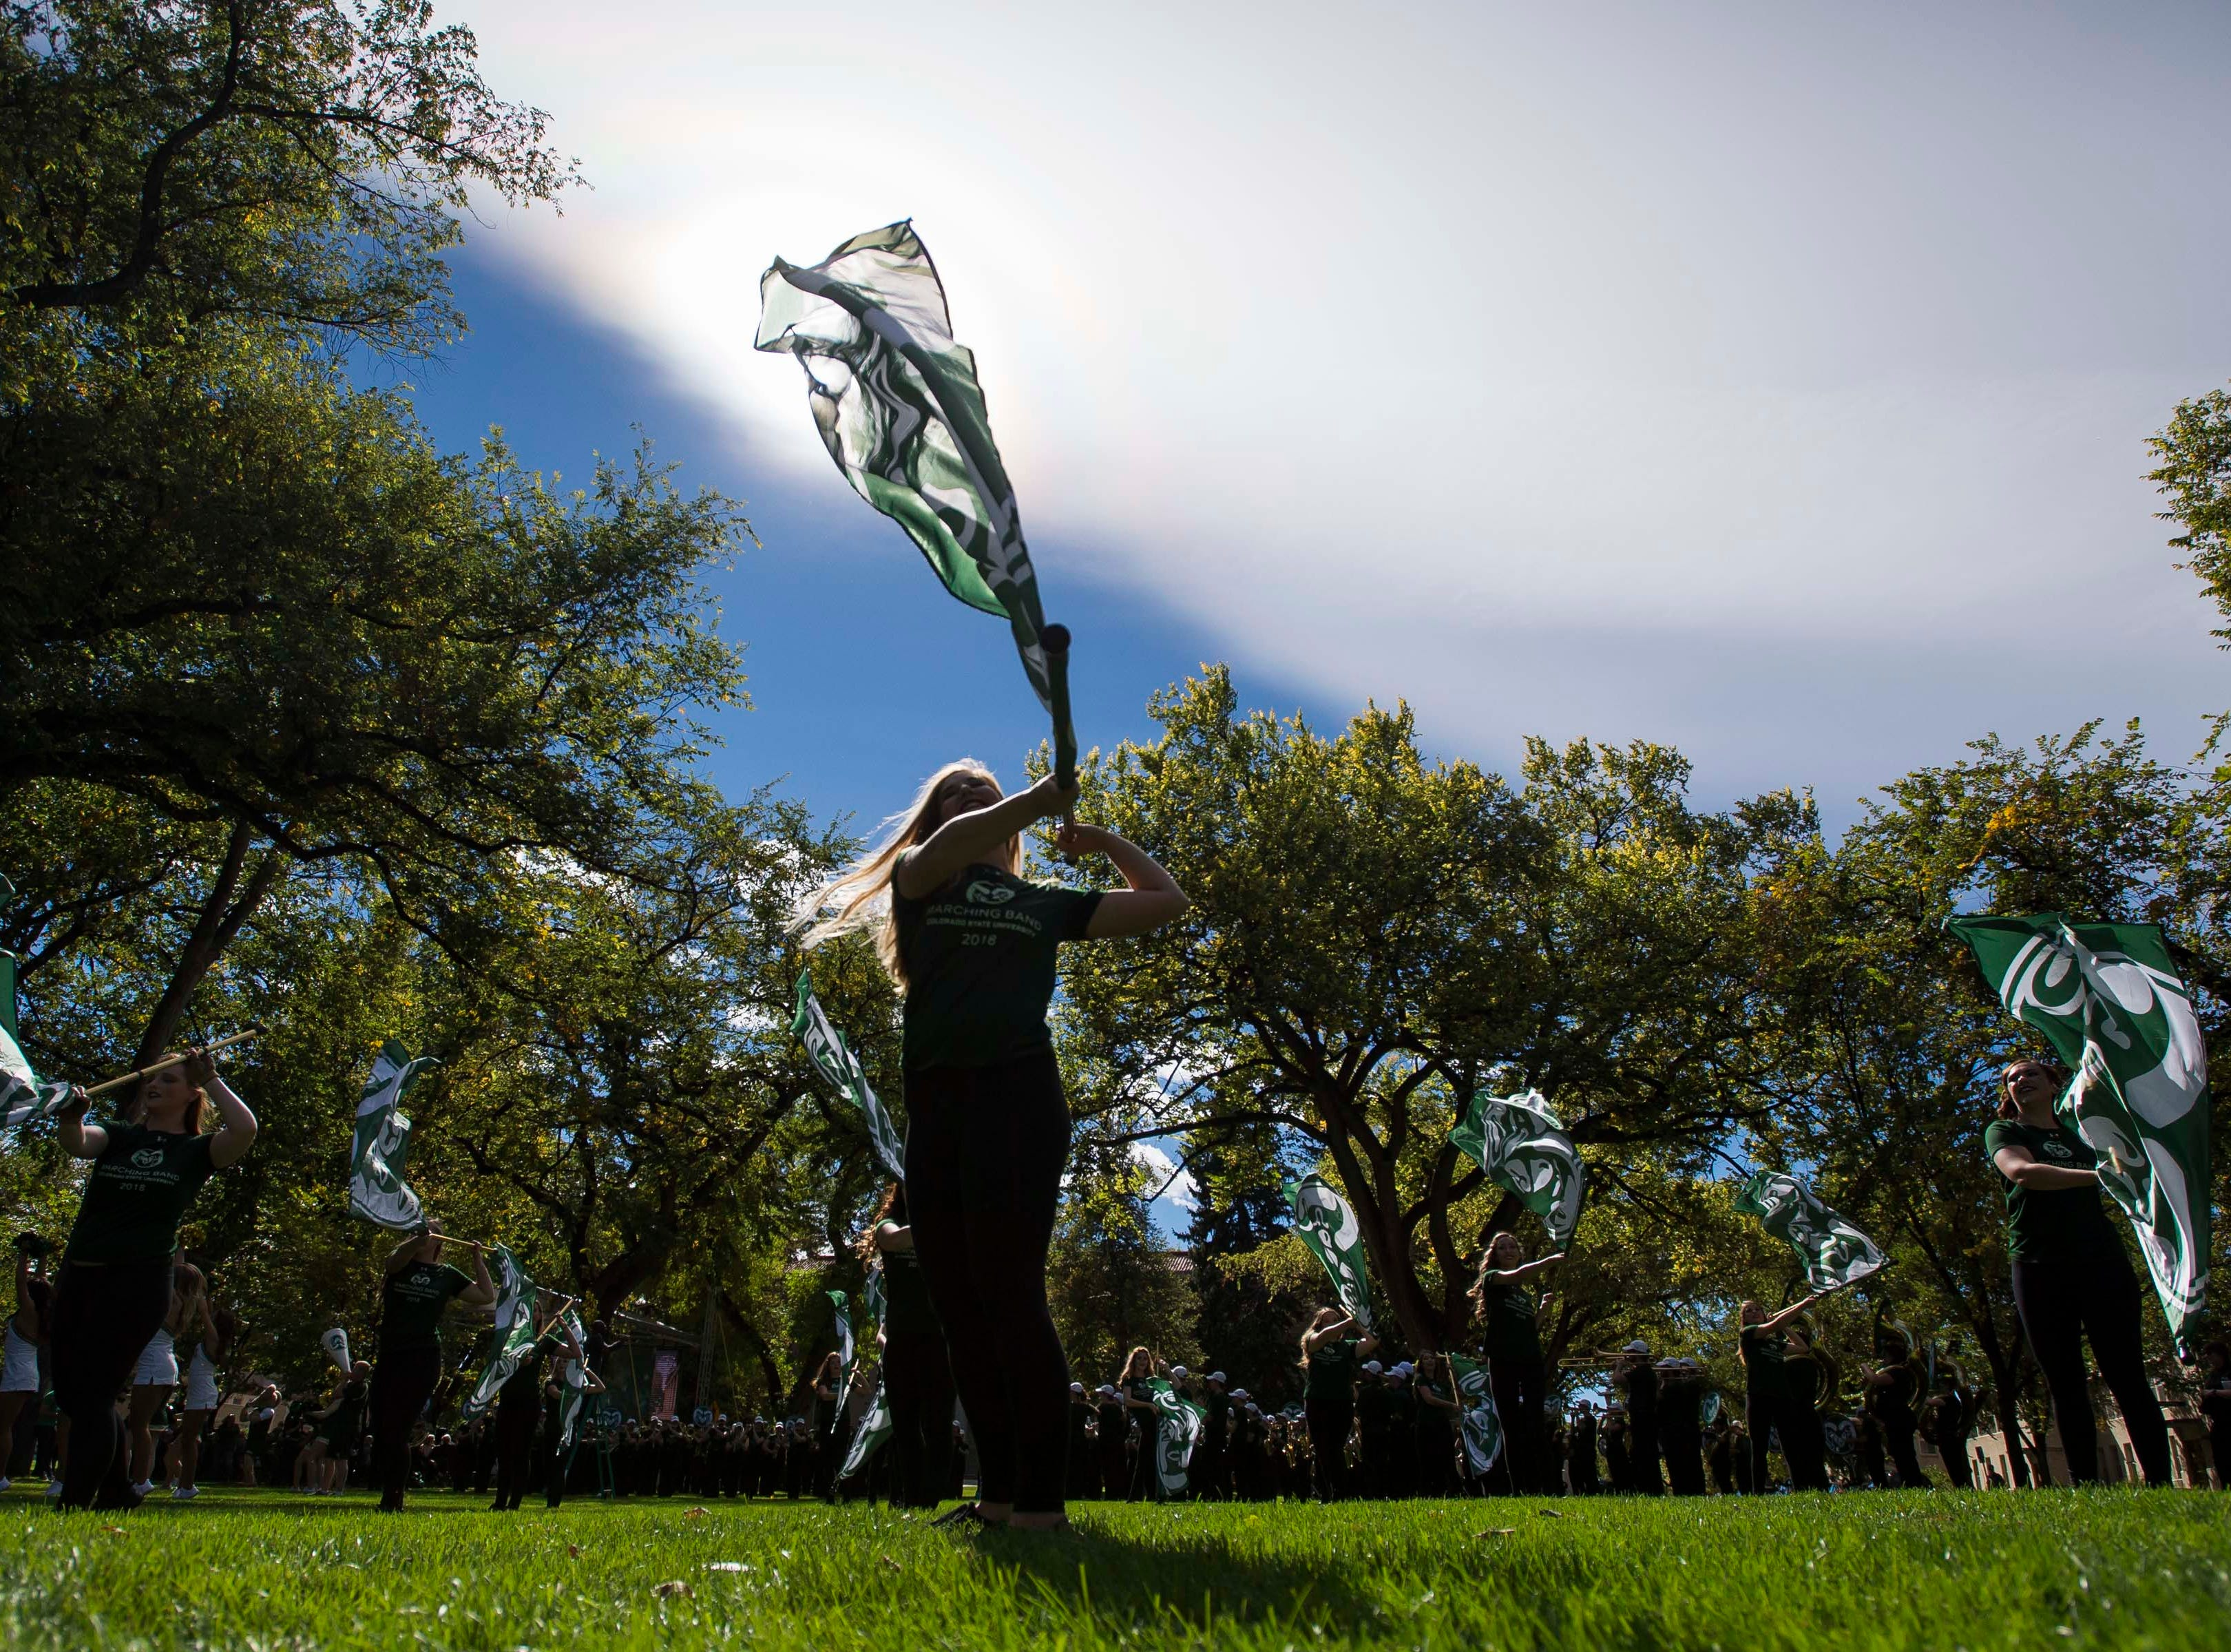 CSU marching band senior color guard Brittany Oelschlagger participates in the 2018 fall address on Wednesday, Oct. 3, 2018, at the Colorado State University campus in Fort Collins, Colo.